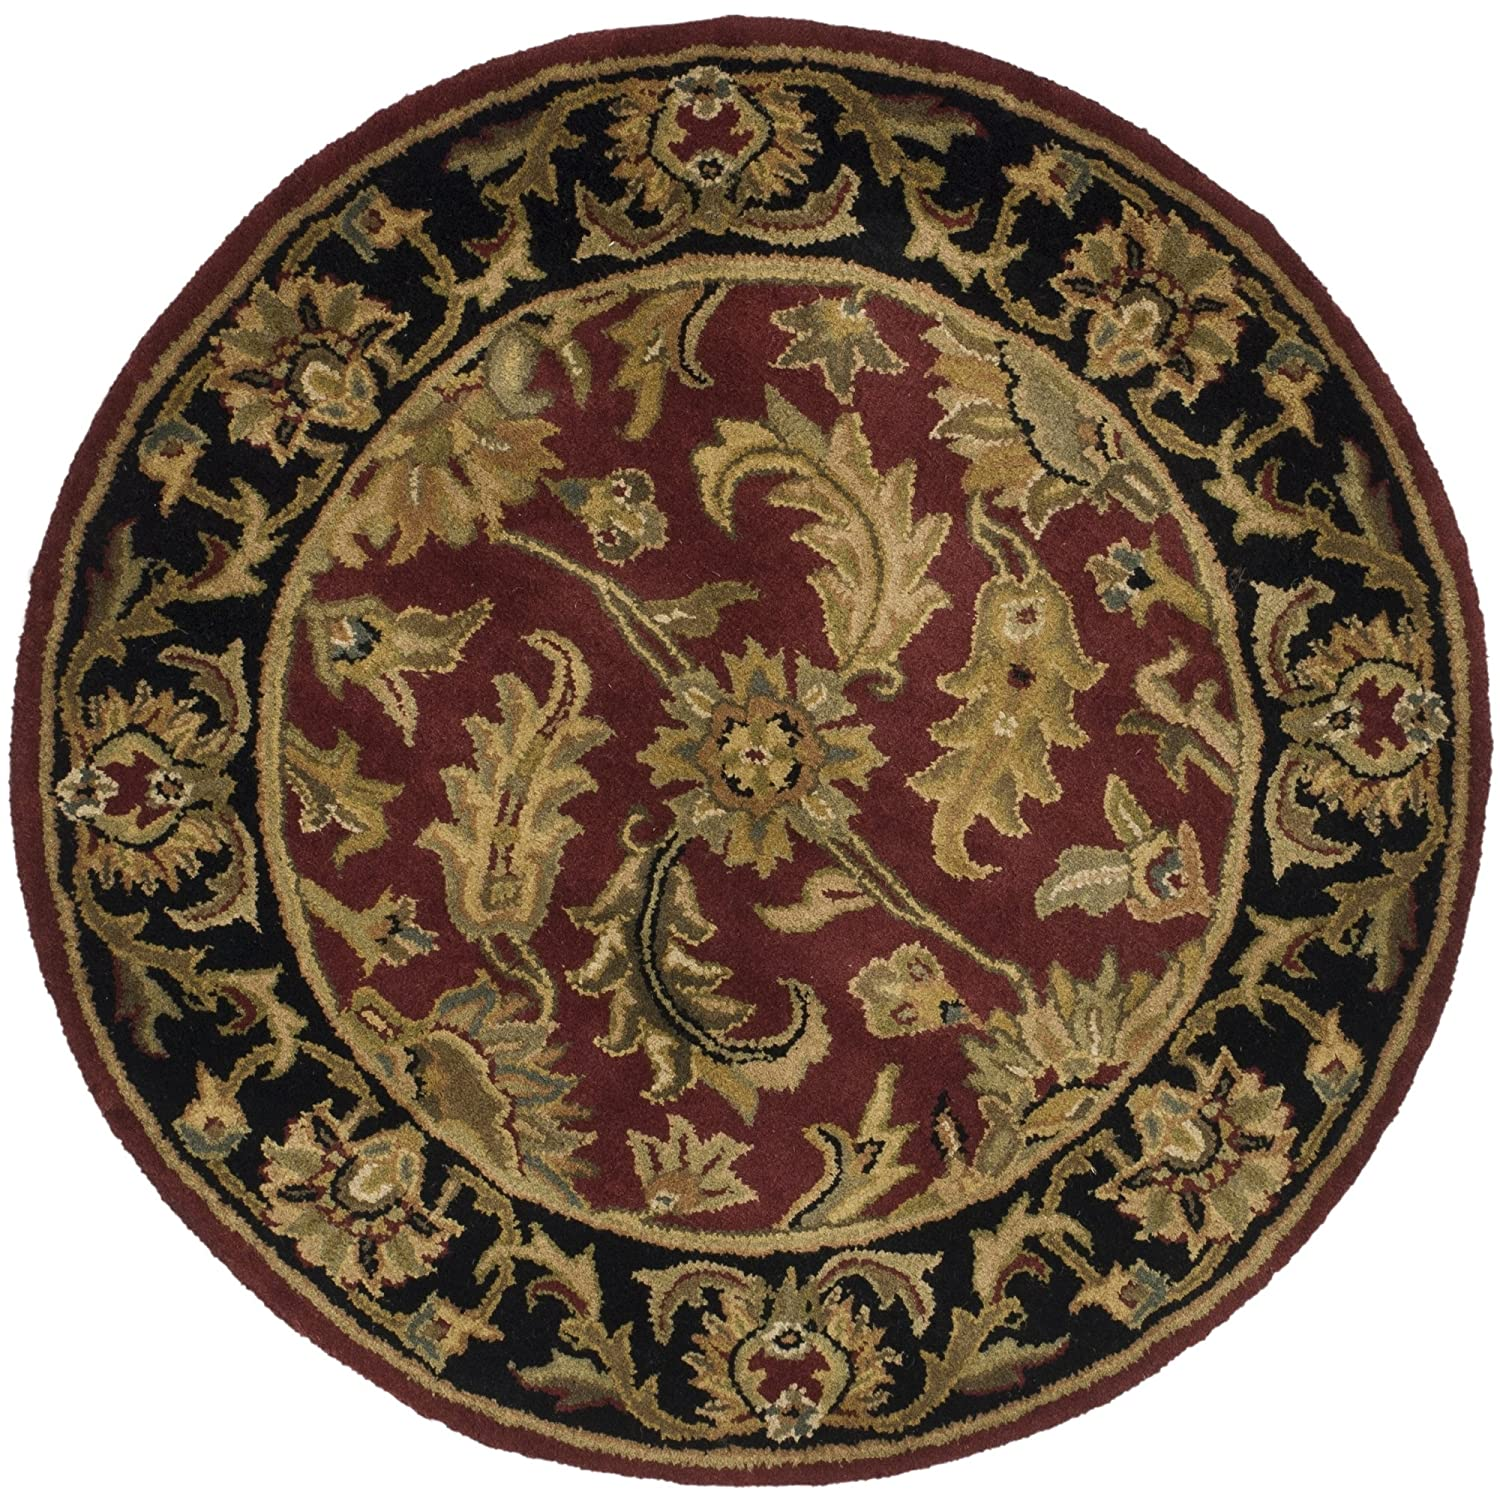 Safavieh Heritage Collection HG628C Handmade Red and Black Wool Round Area Rug, 4 feet in Diameter (4' Diameter) HG628C-4R